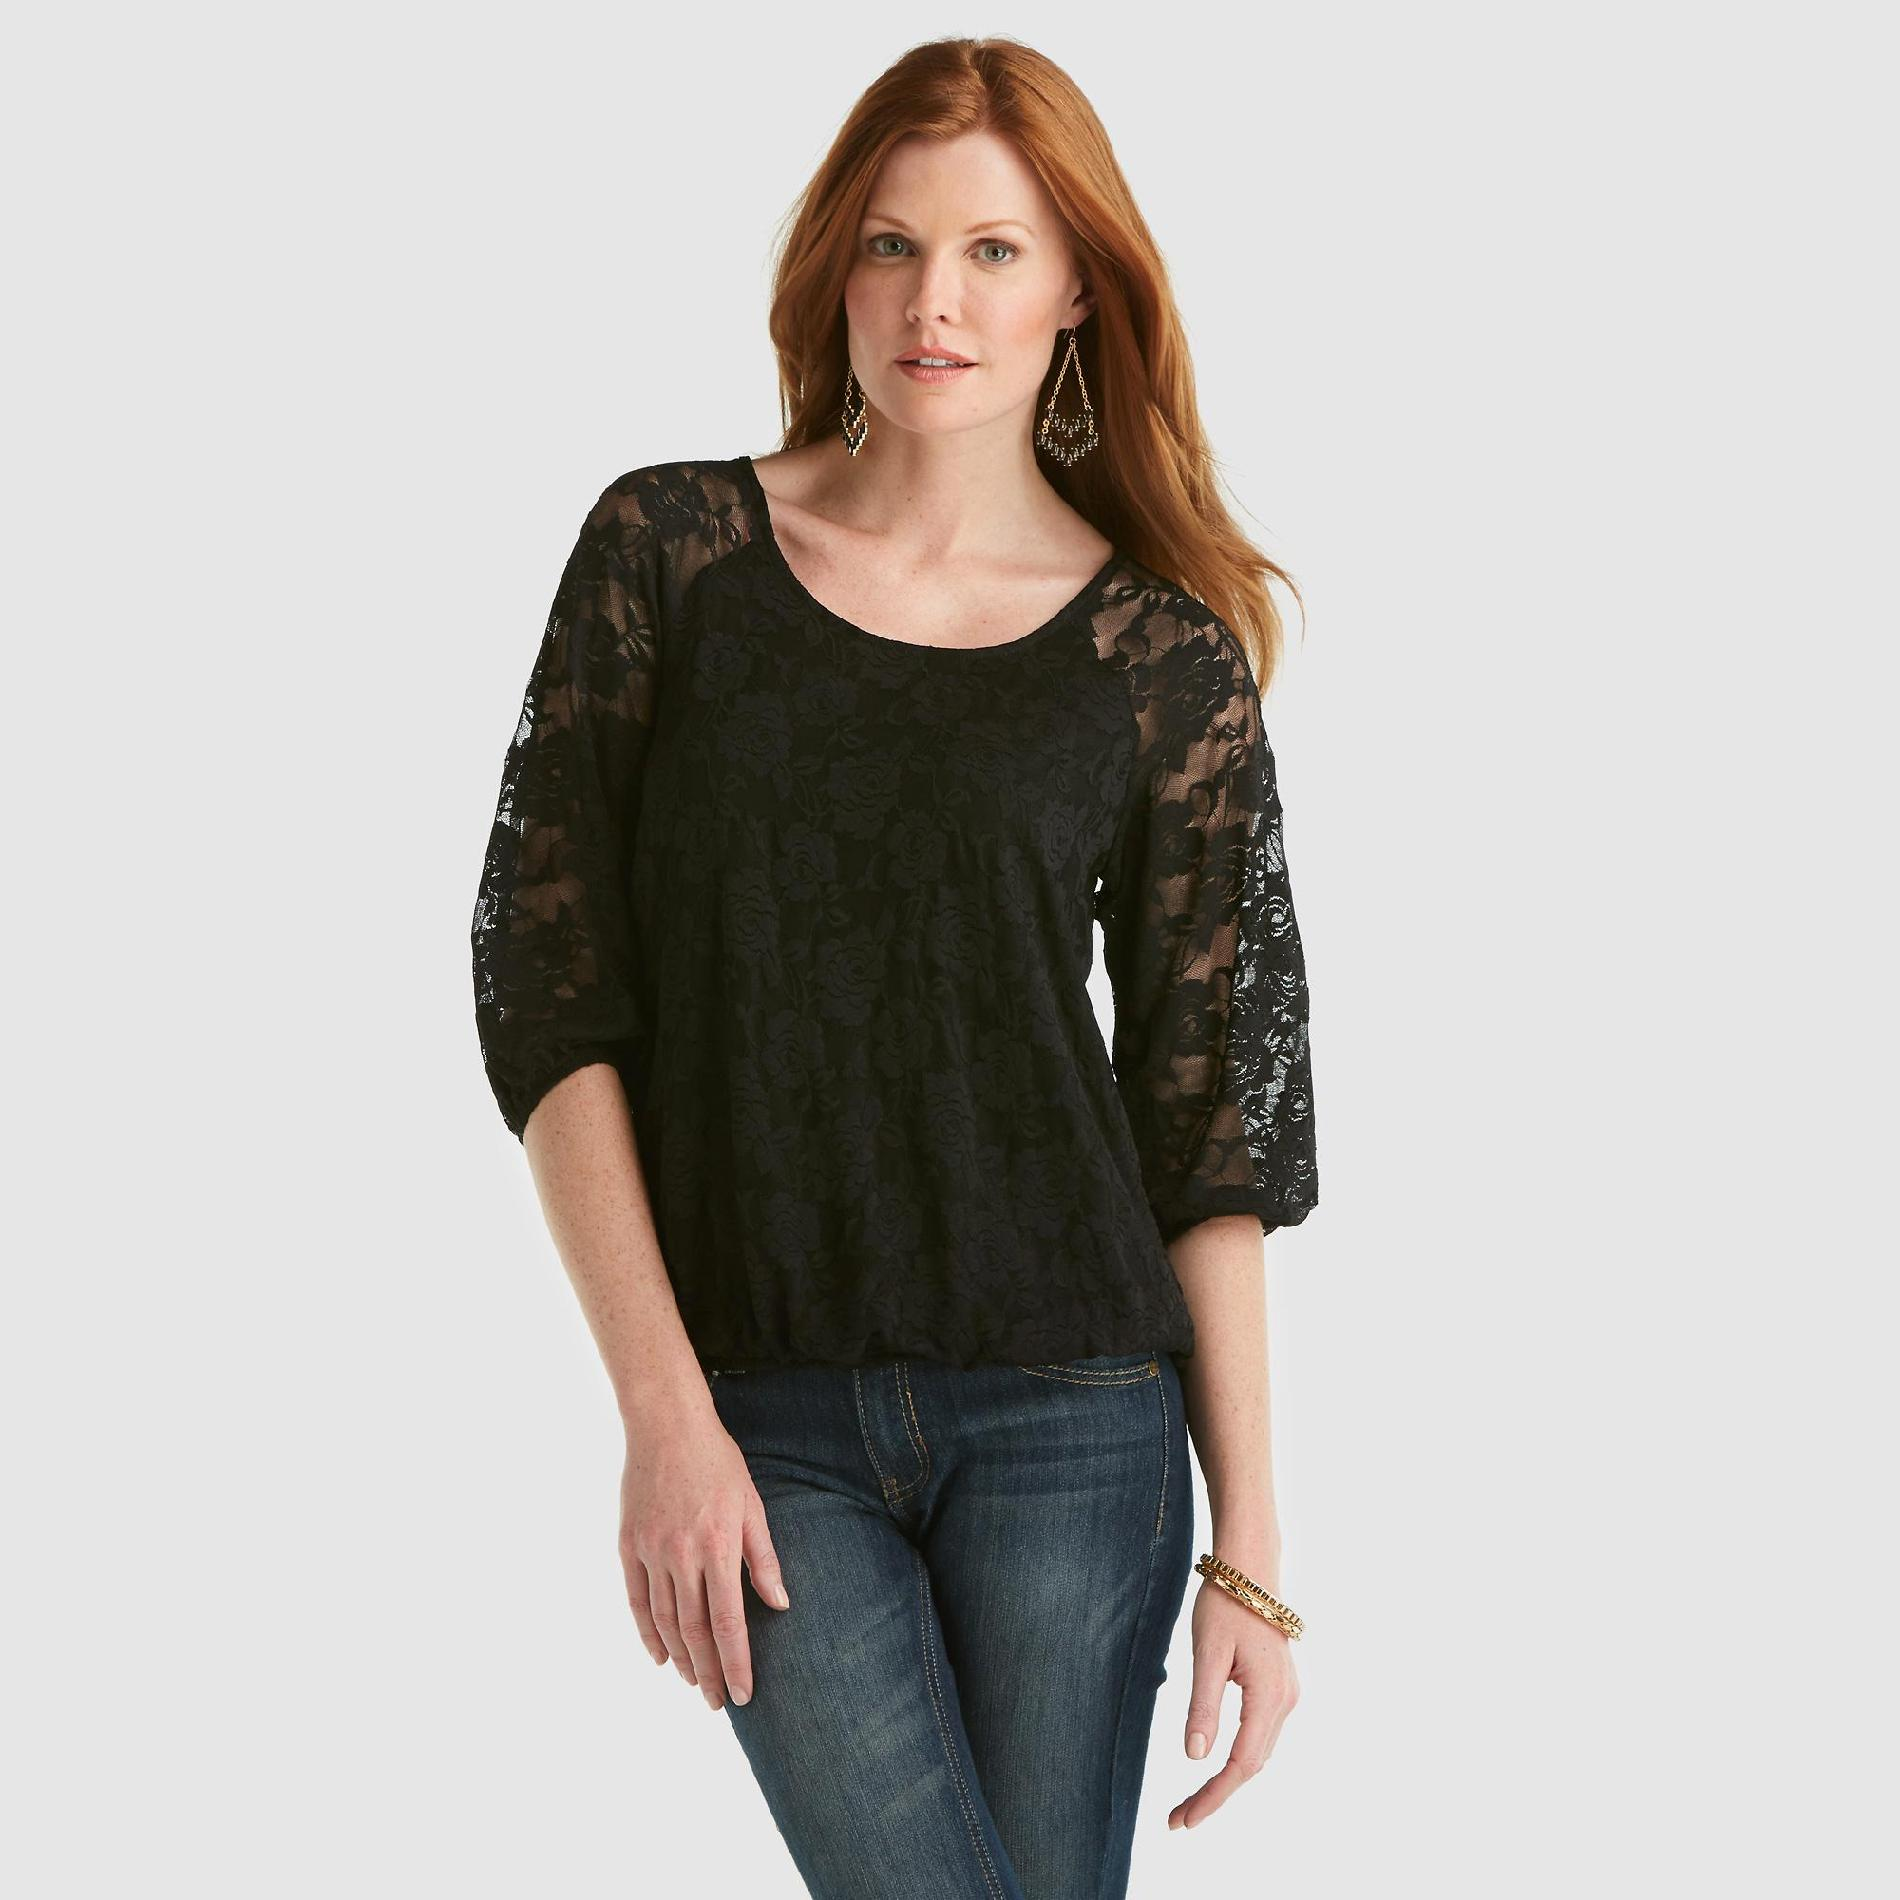 Metaphor Women's Lace-Sleeve Blouse at Sears.com